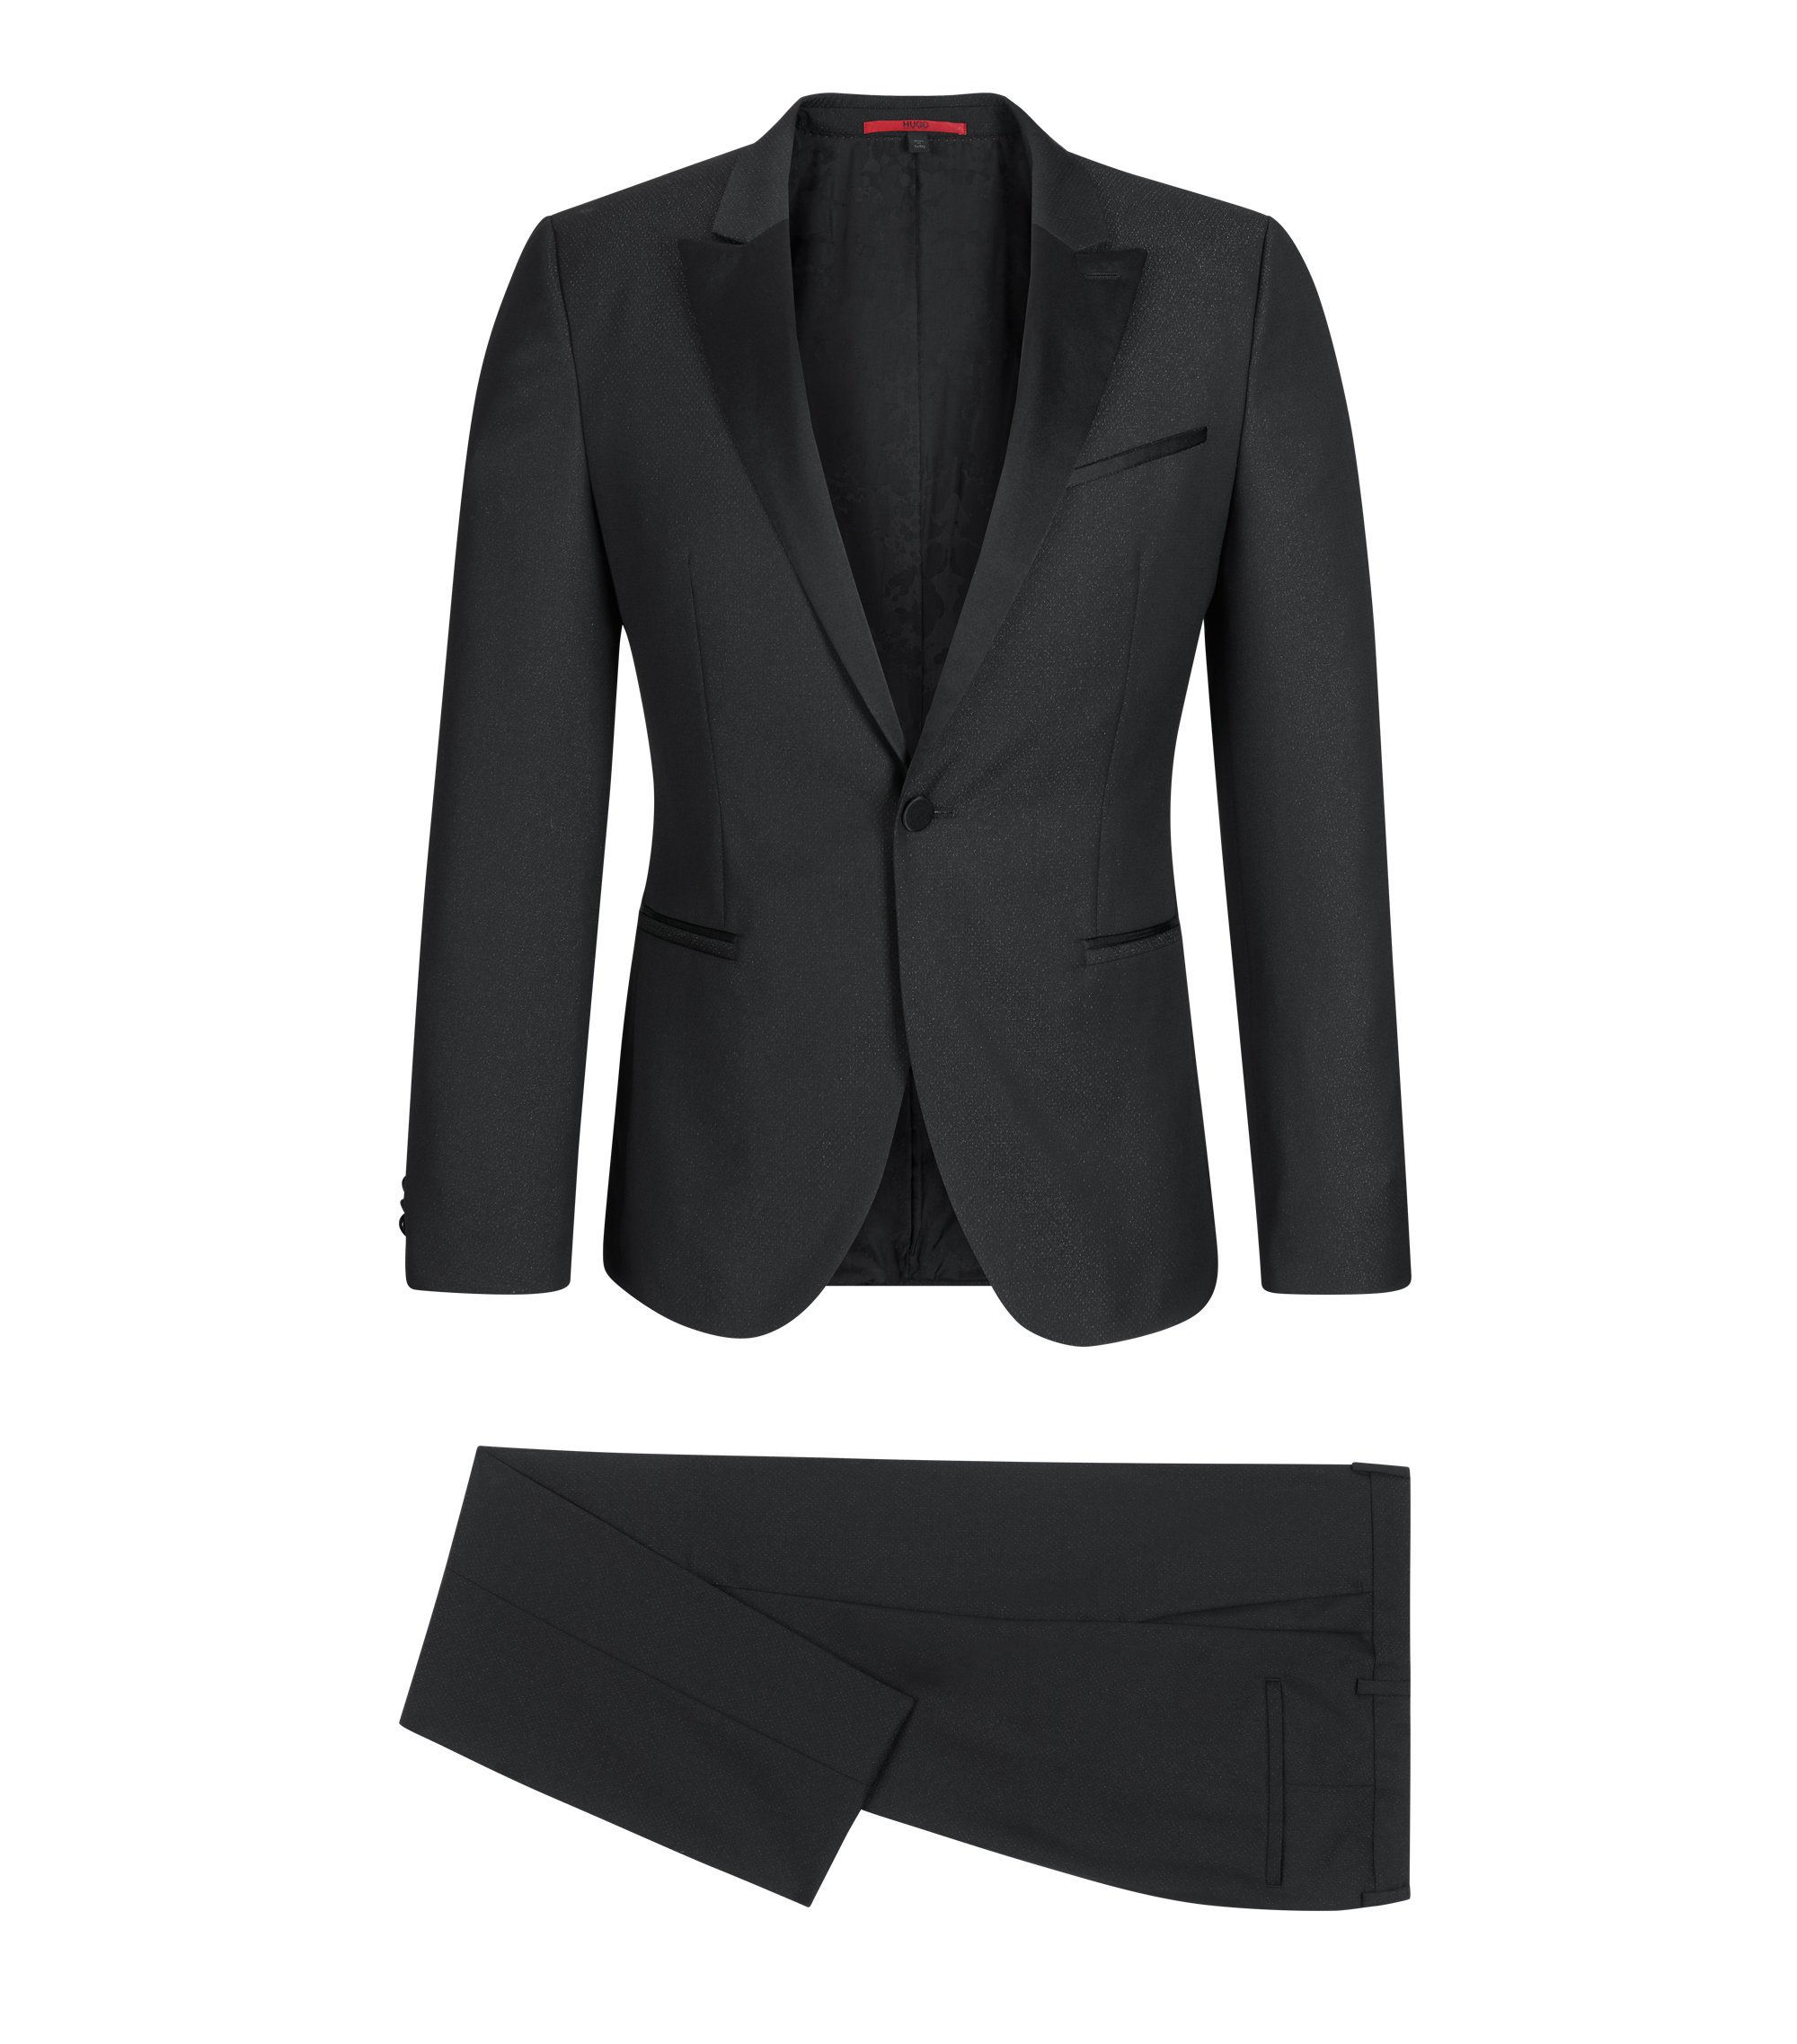 Wool Blend Tuxedo, Extra Slim Fit | Auerd/Himins, Black